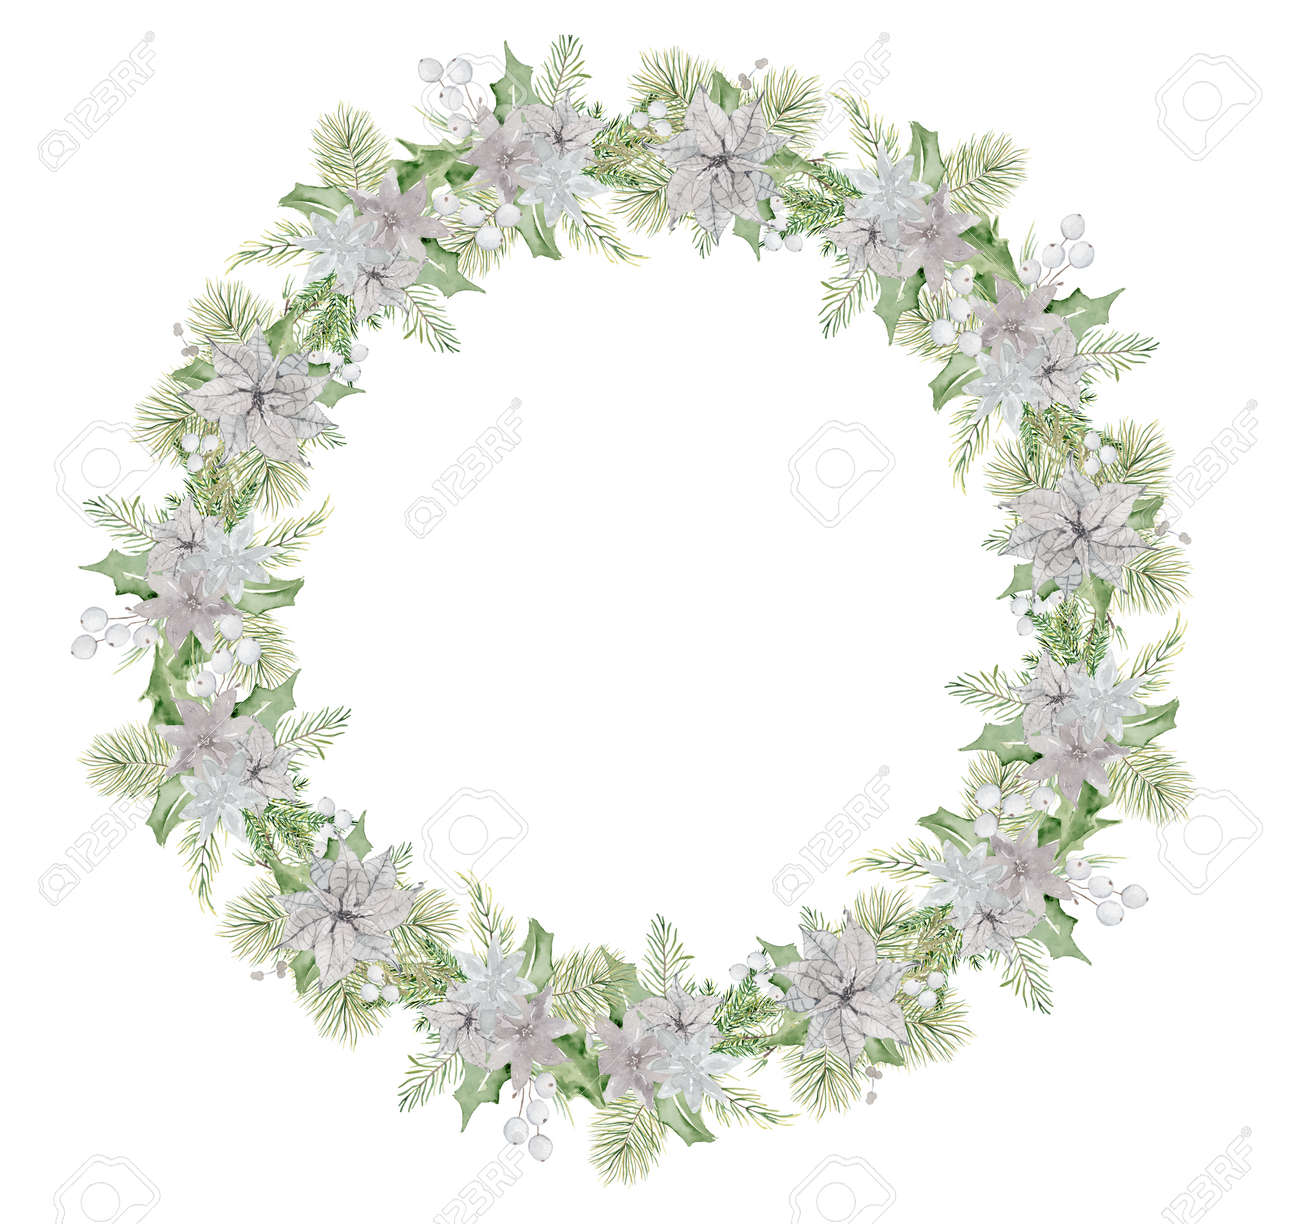 Watercolor Christmas wreath with pine tree branches and flowers hand drawn illustration isolated on white background - 154865512